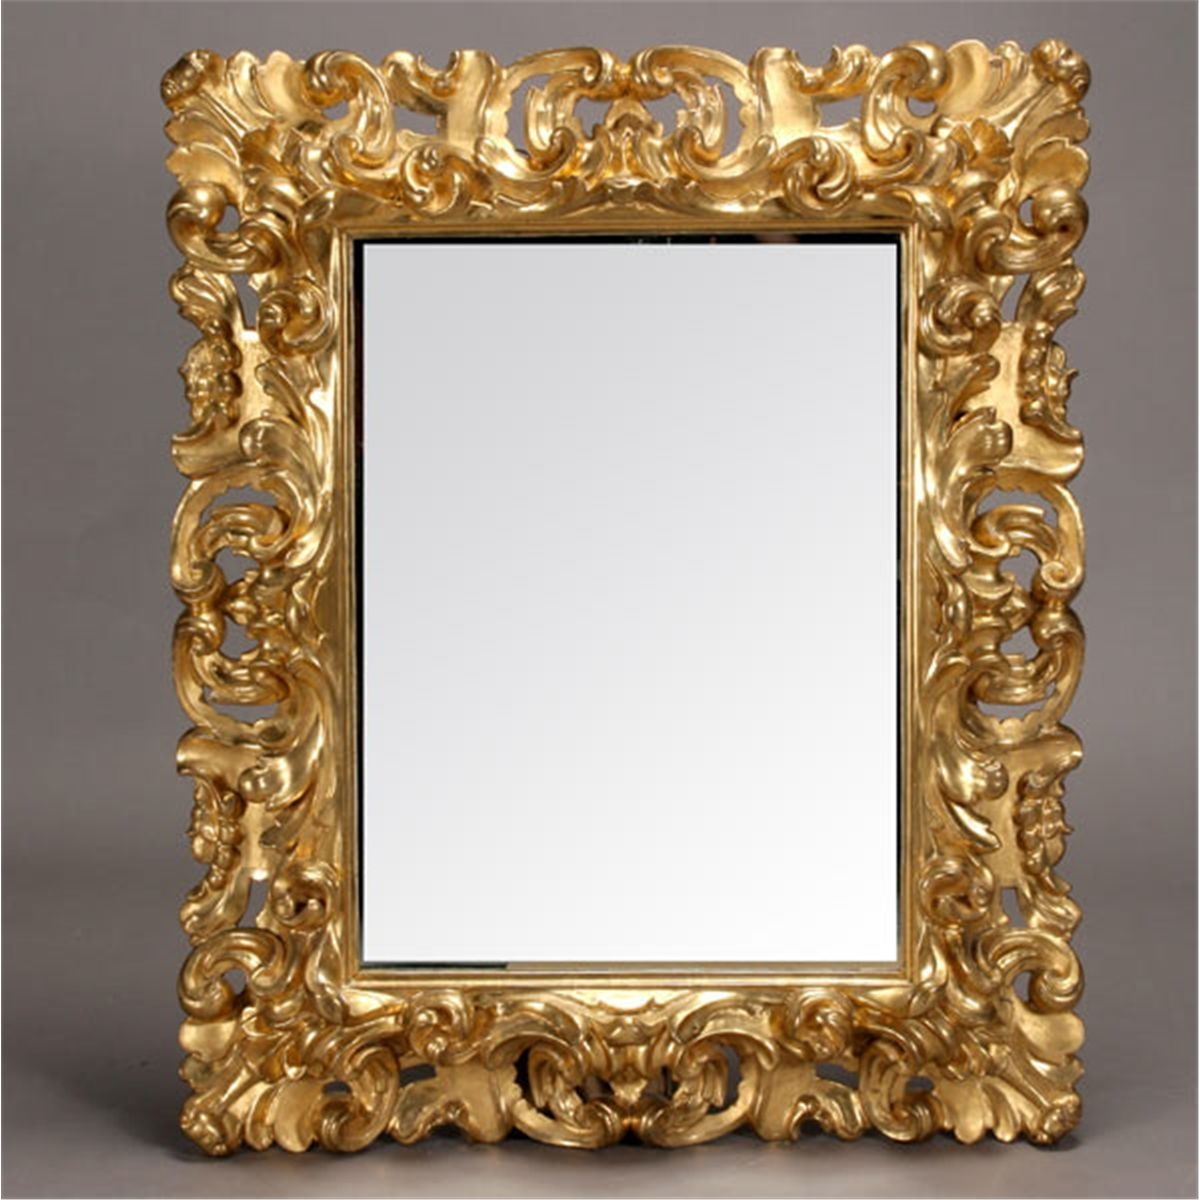 If It Aint Baroque Dont Fix It Baroque Photos And Offices Within Cheap Baroque Mirror (Image 8 of 15)